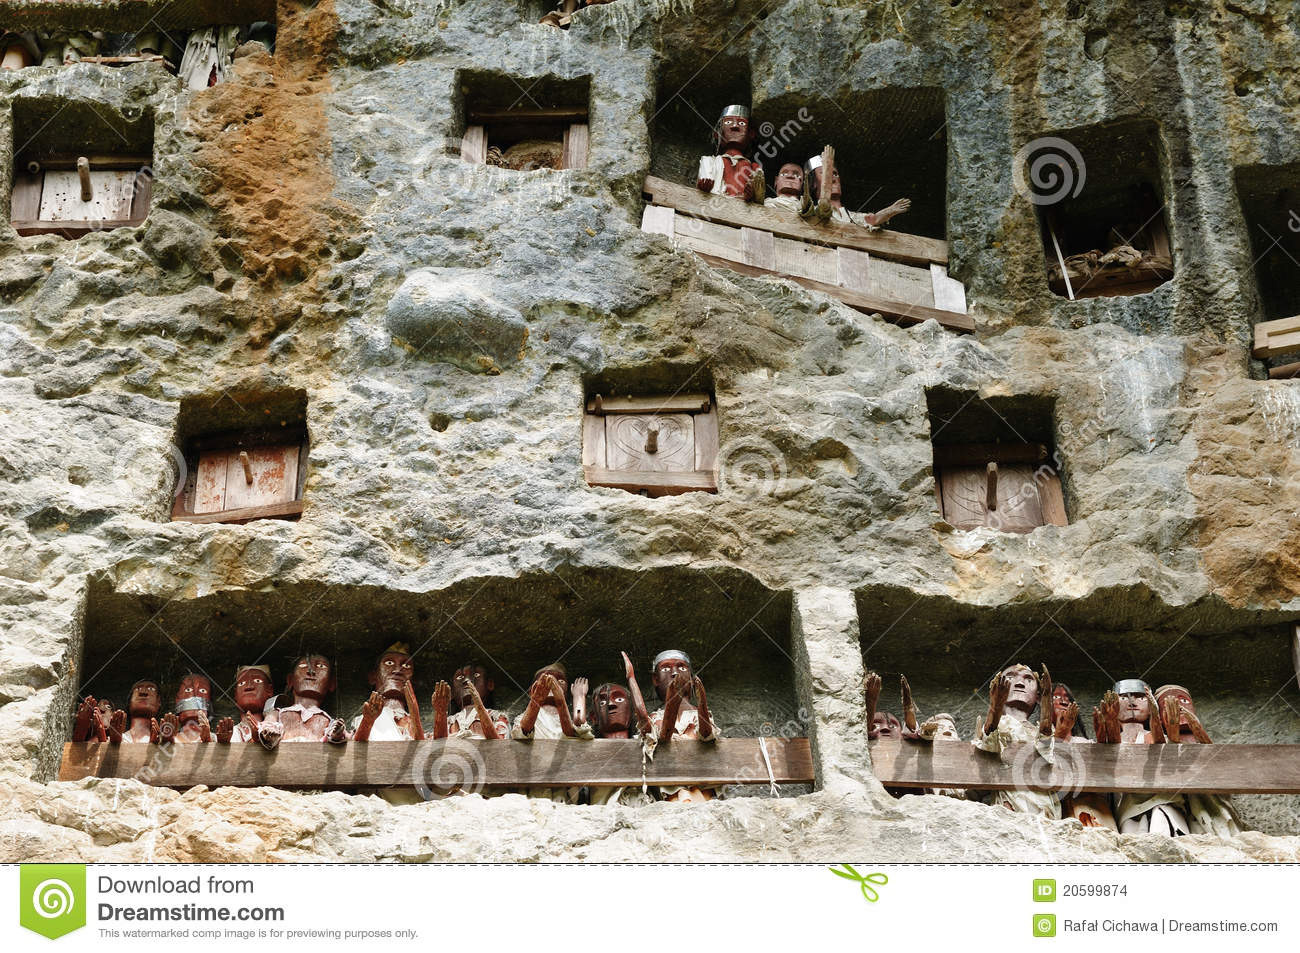 Download Indonesia, Sulawesi, Tana Toraja, Ancient Tomb Stock Photo - Image of asia, piles: 20599874